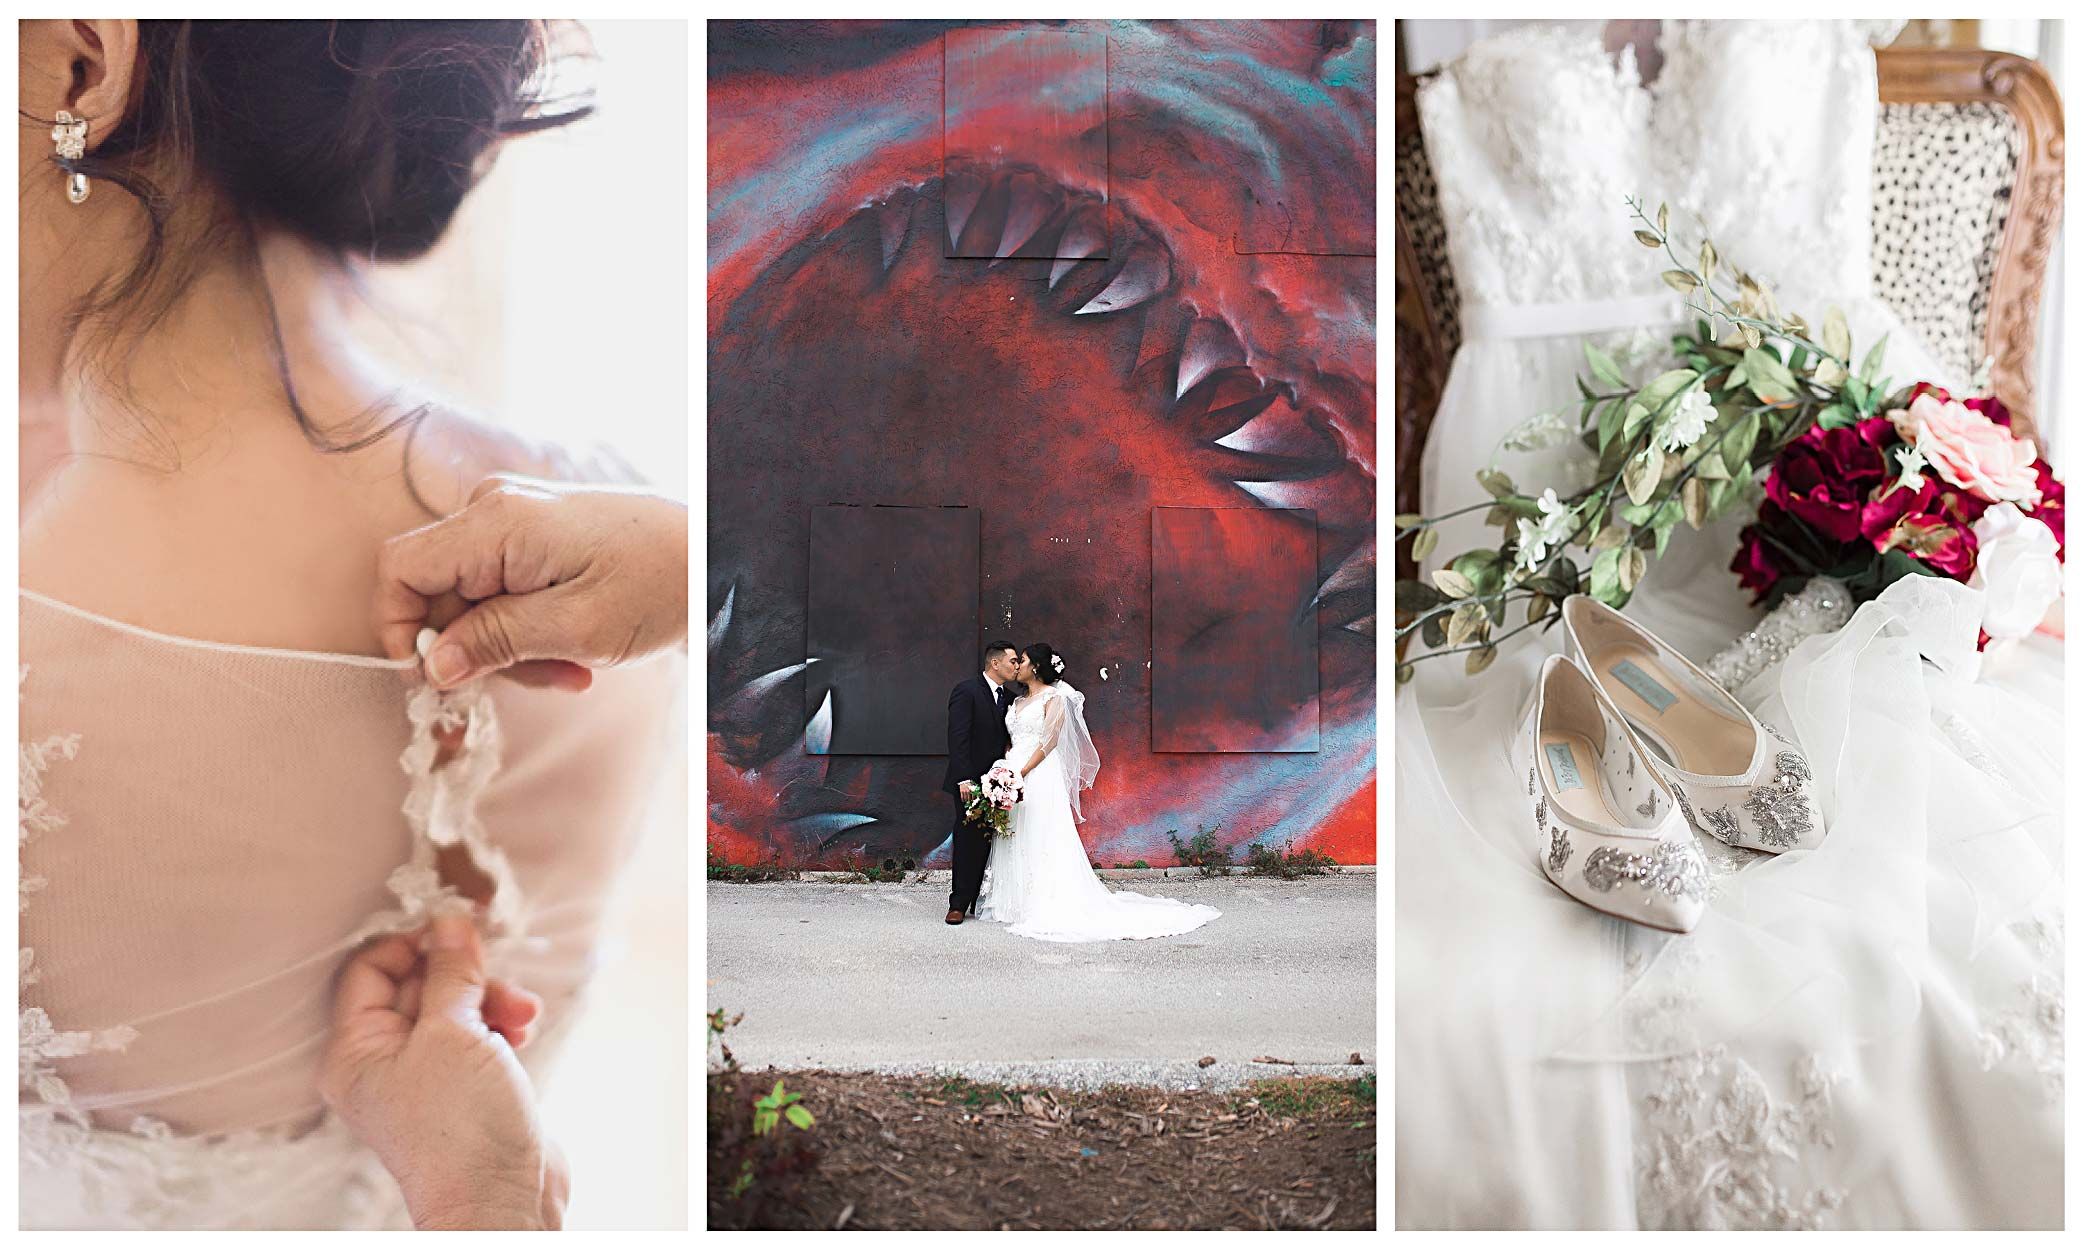 eau gallie arts district filipino wedding photos